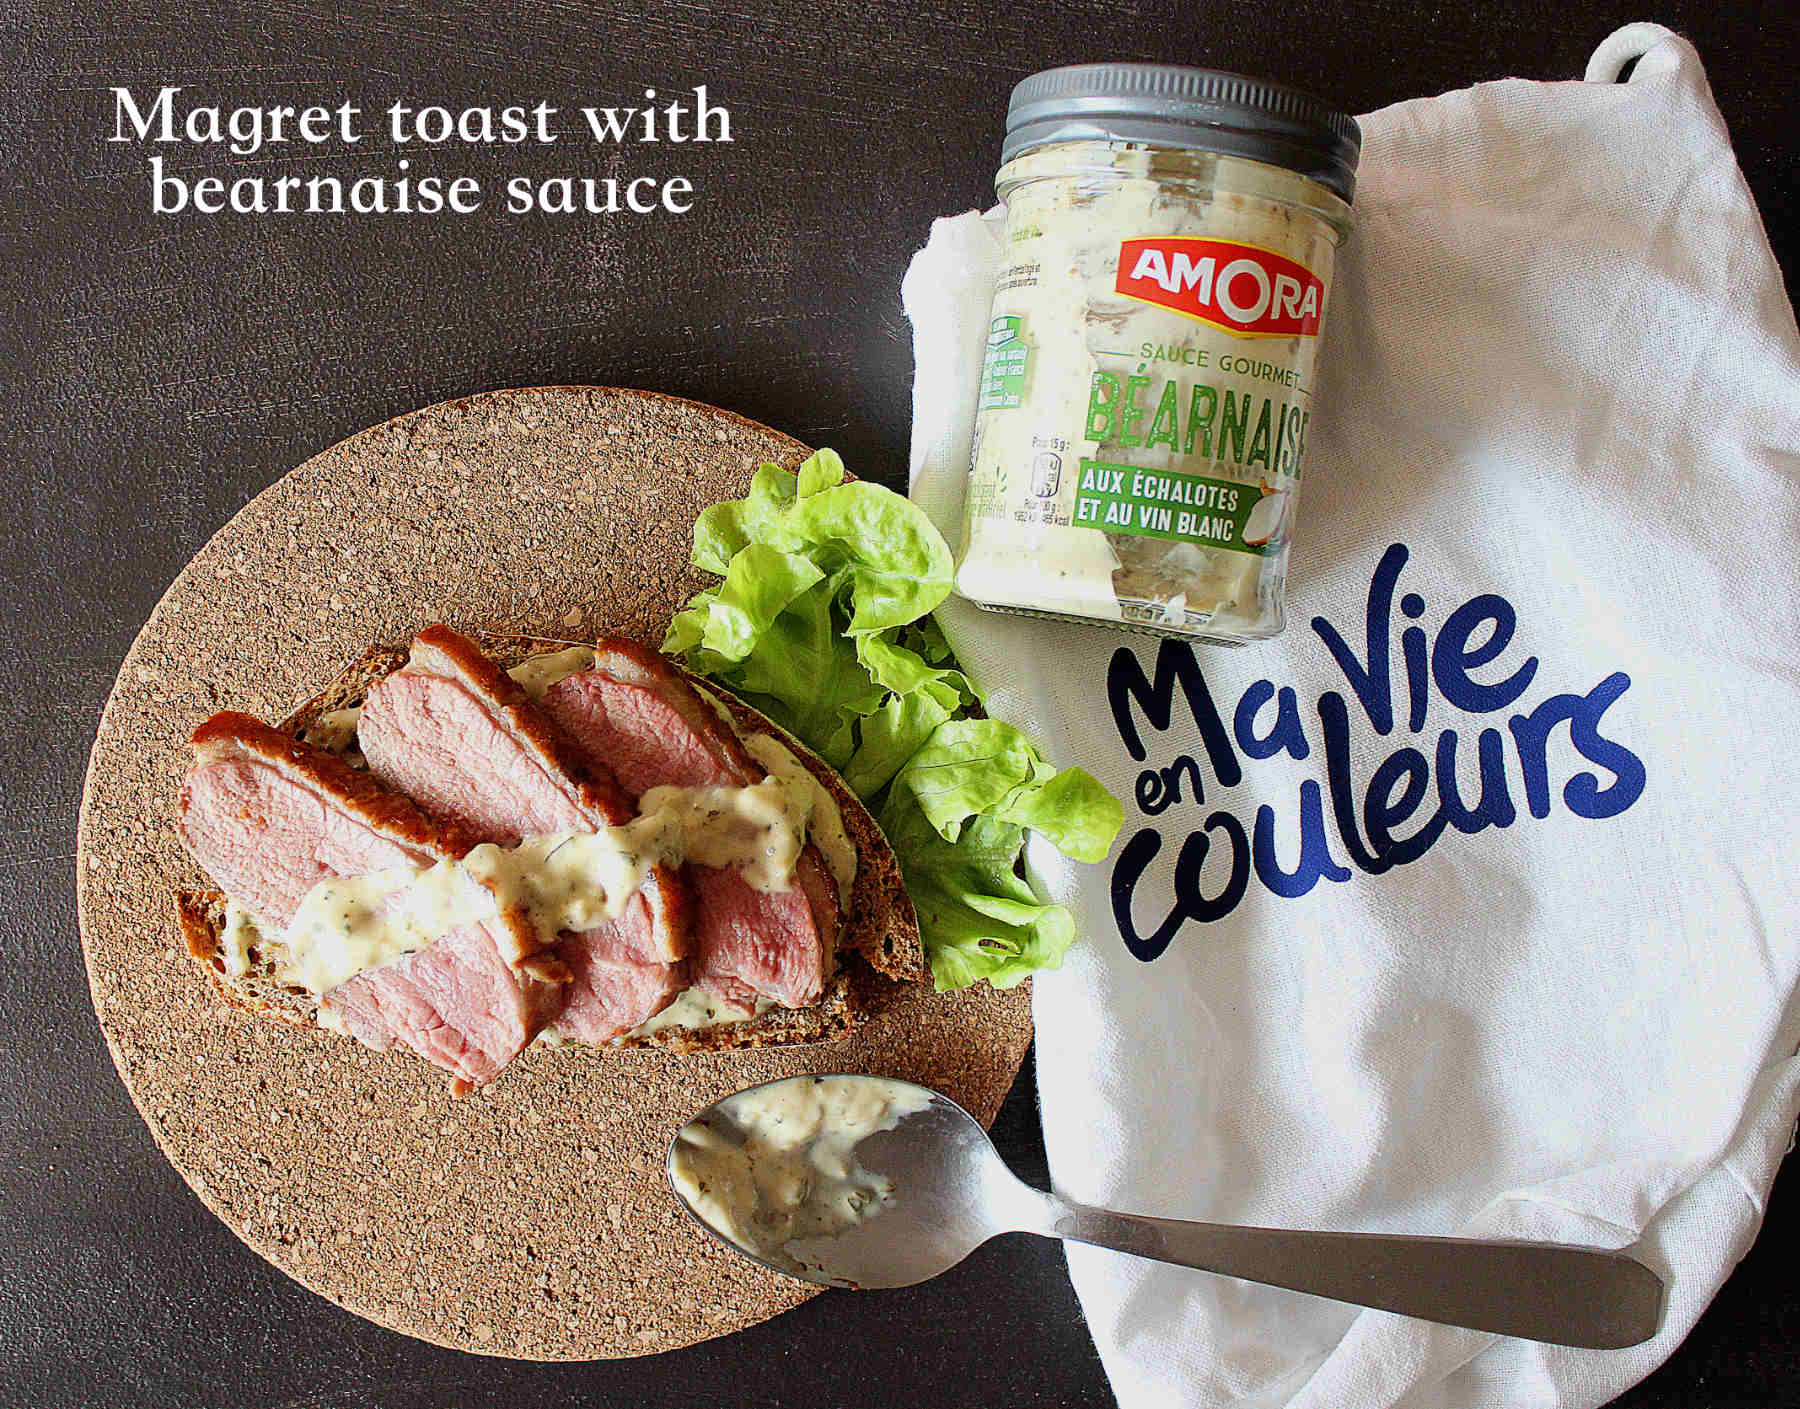 Magret toast with béarnaise sauce with Ma vie en couleurs